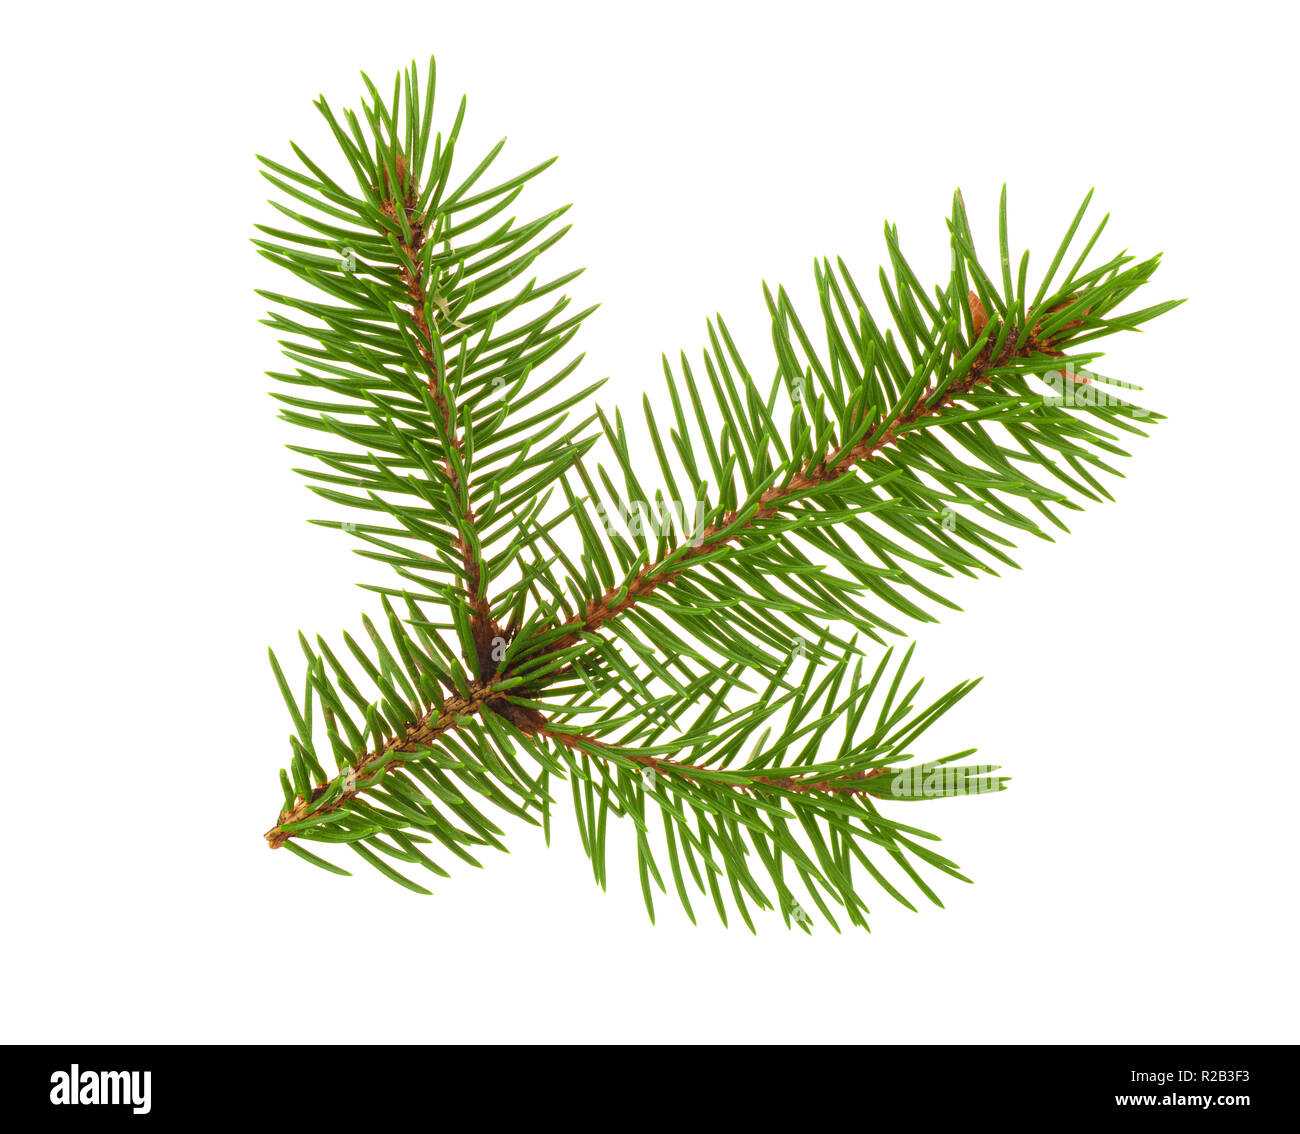 Fir tree twigh isolated on white - Stock Image